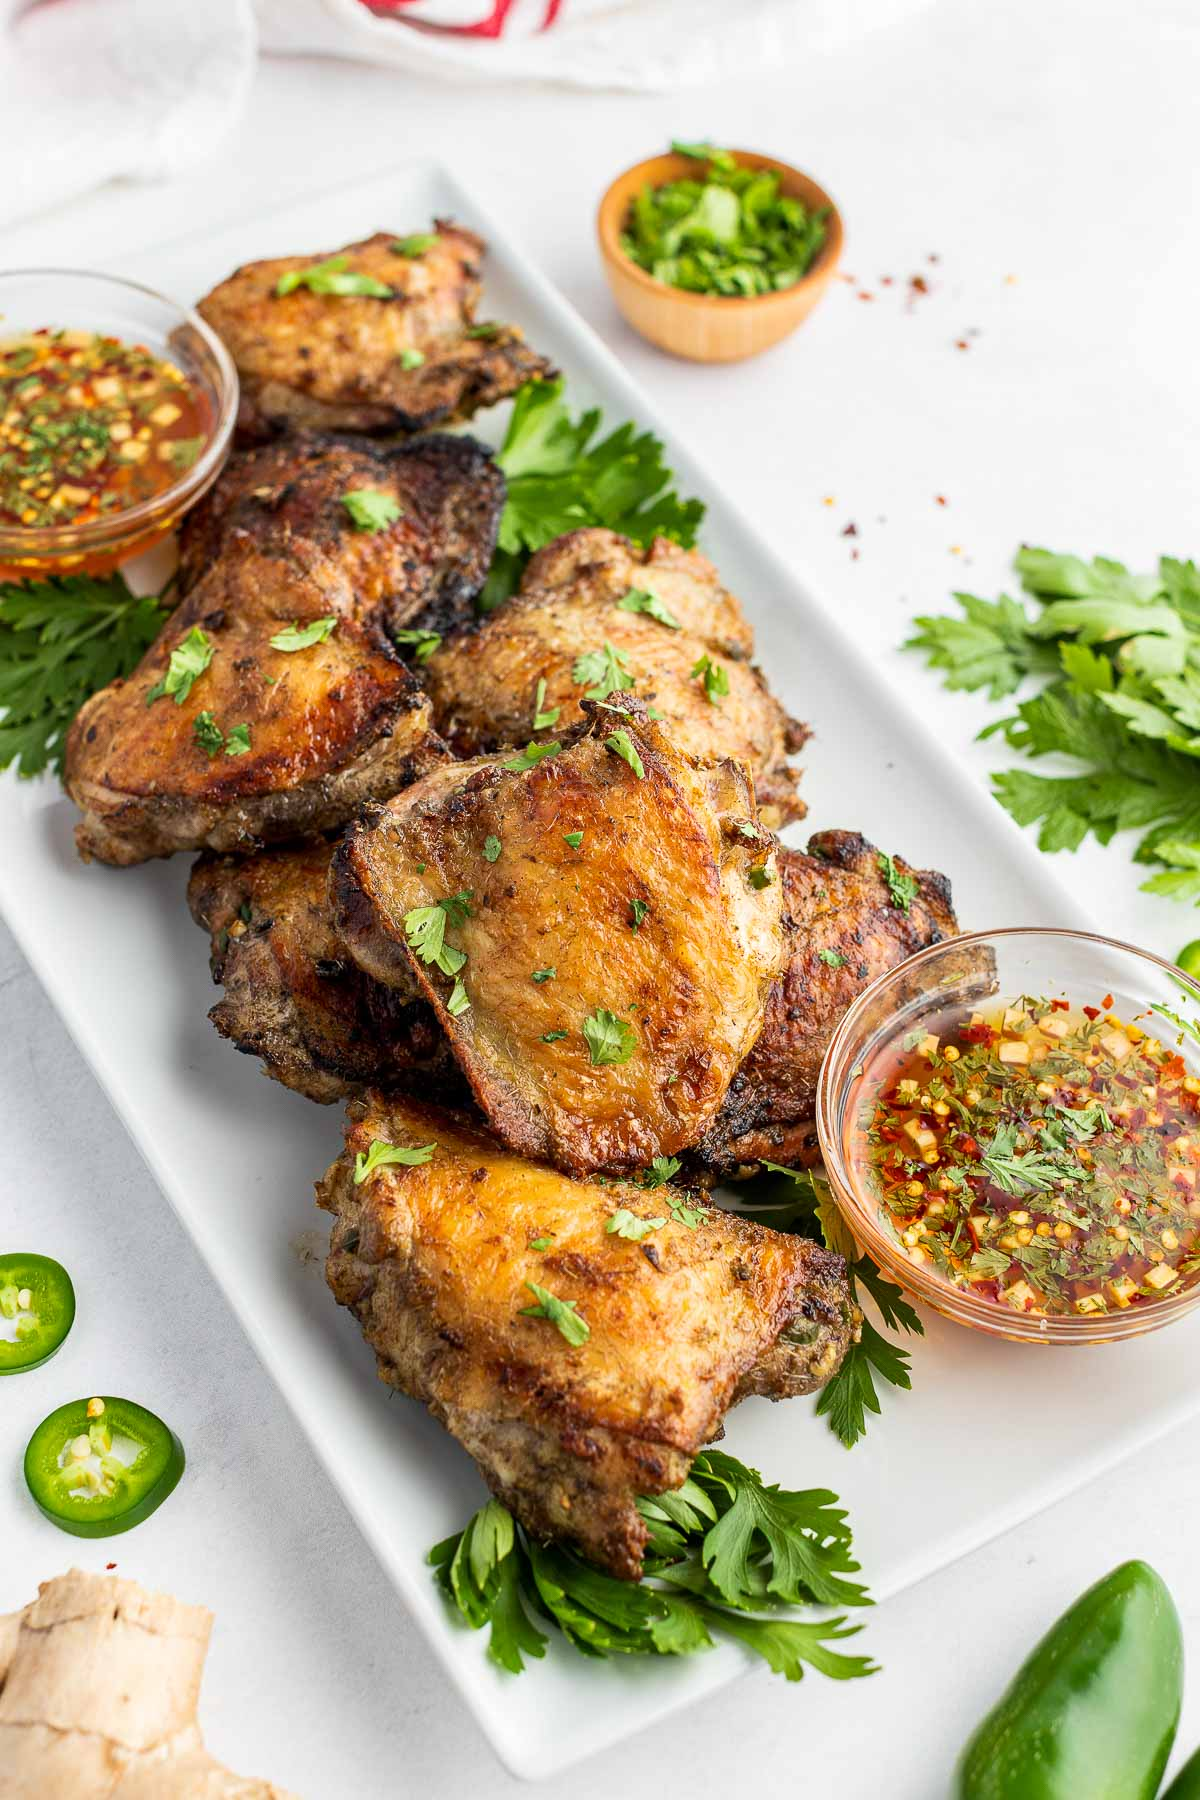 Grilled chicken legs with dip on the plate